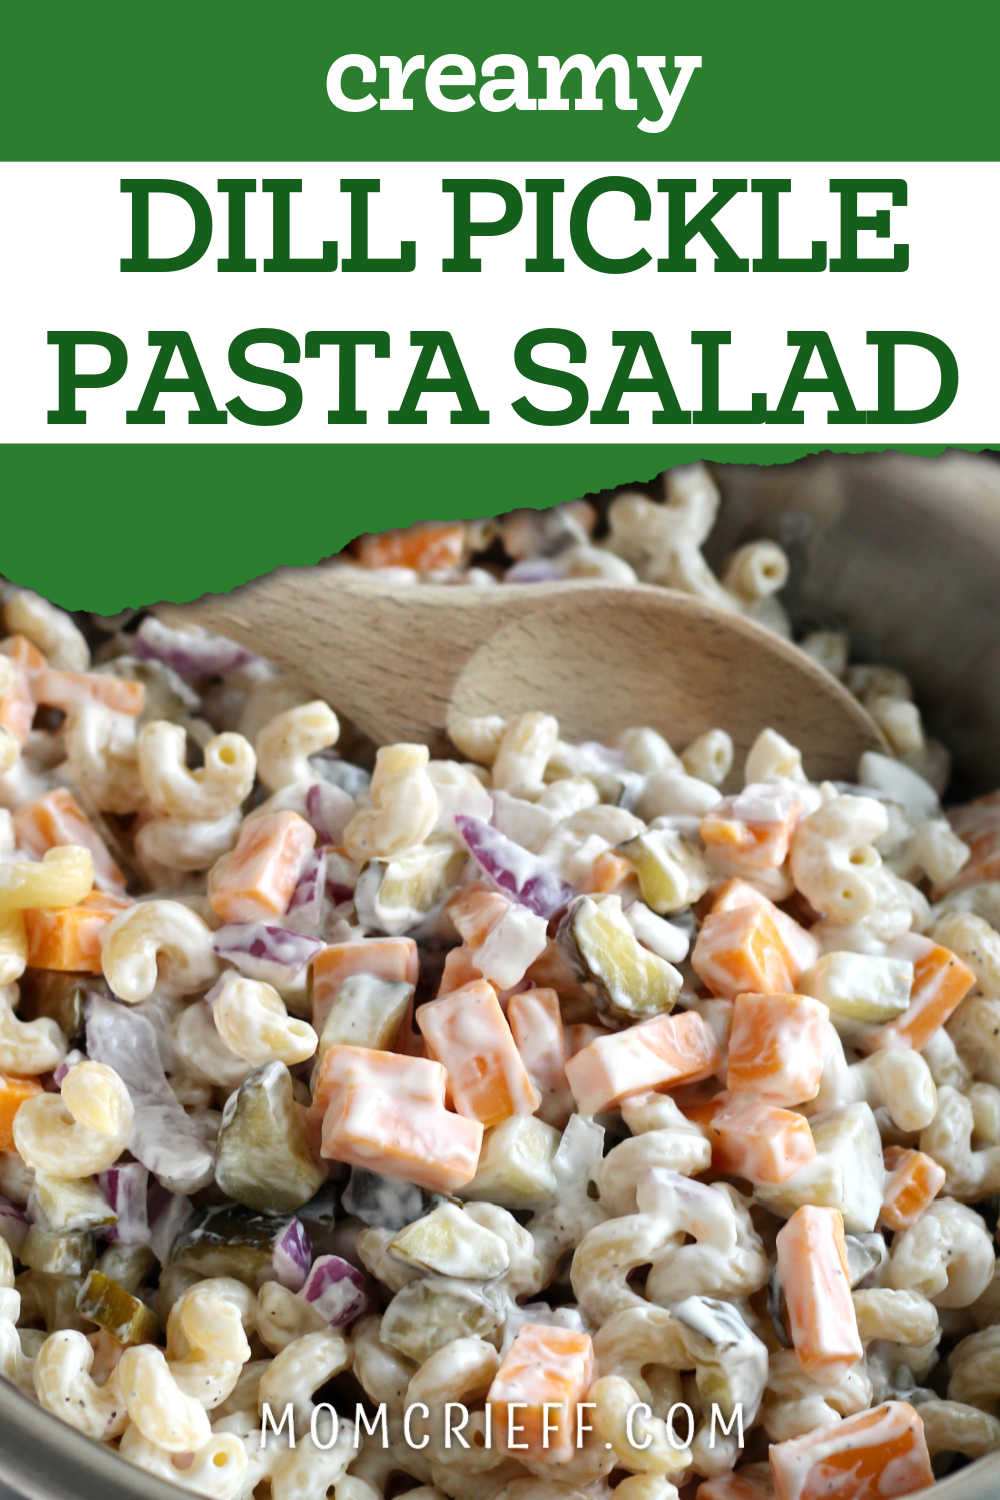 dill pickle pasta salad with text overlay